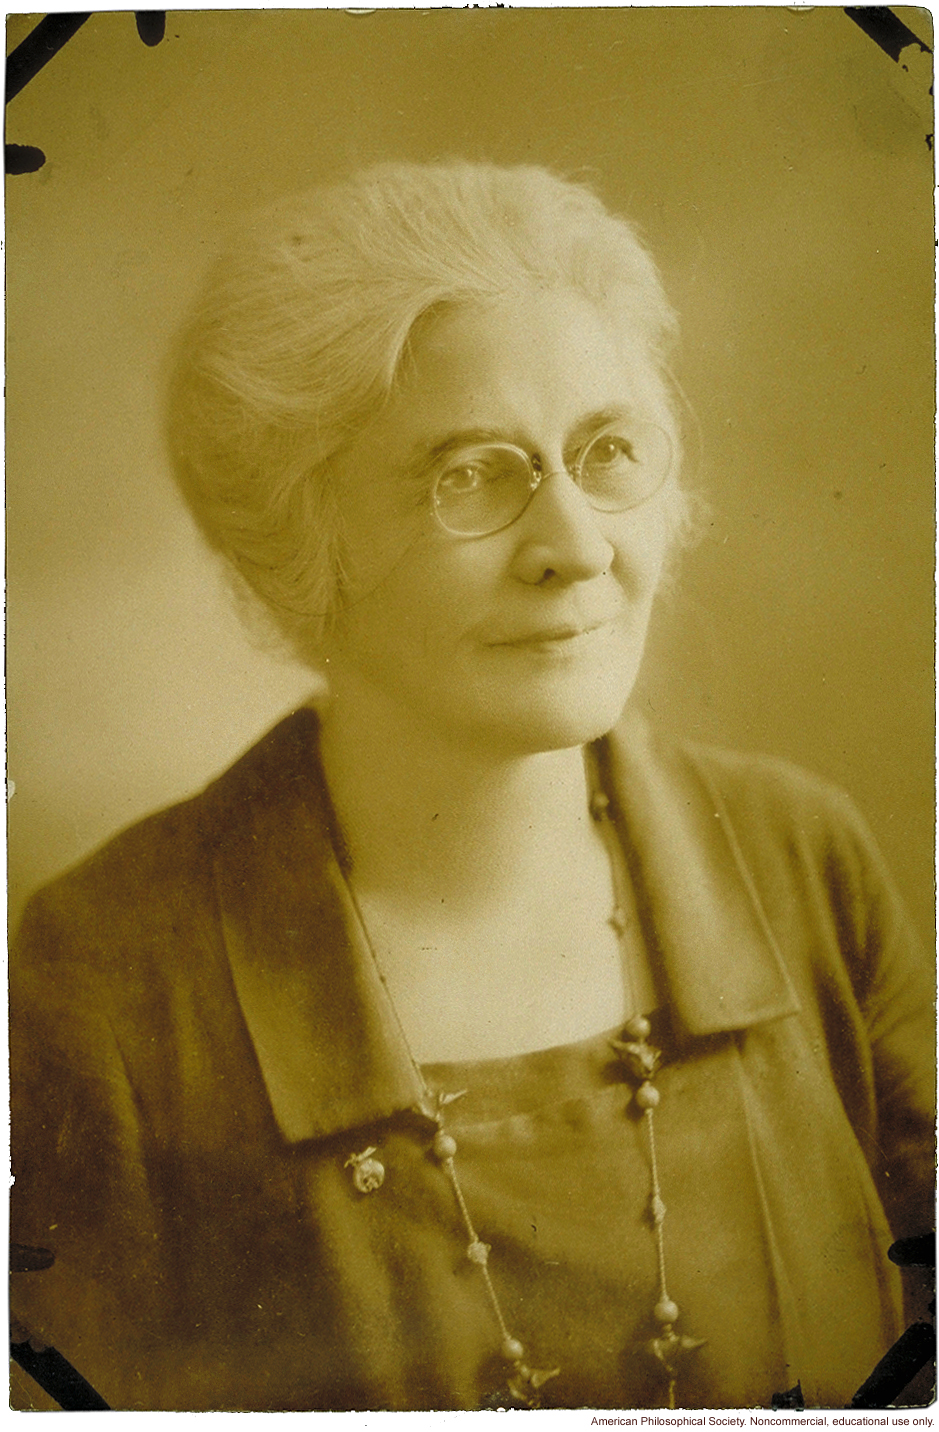 Mary T. Watts, American Eugenics Society, Chairman of the Education Committee and founder of the Fitter Families Contests